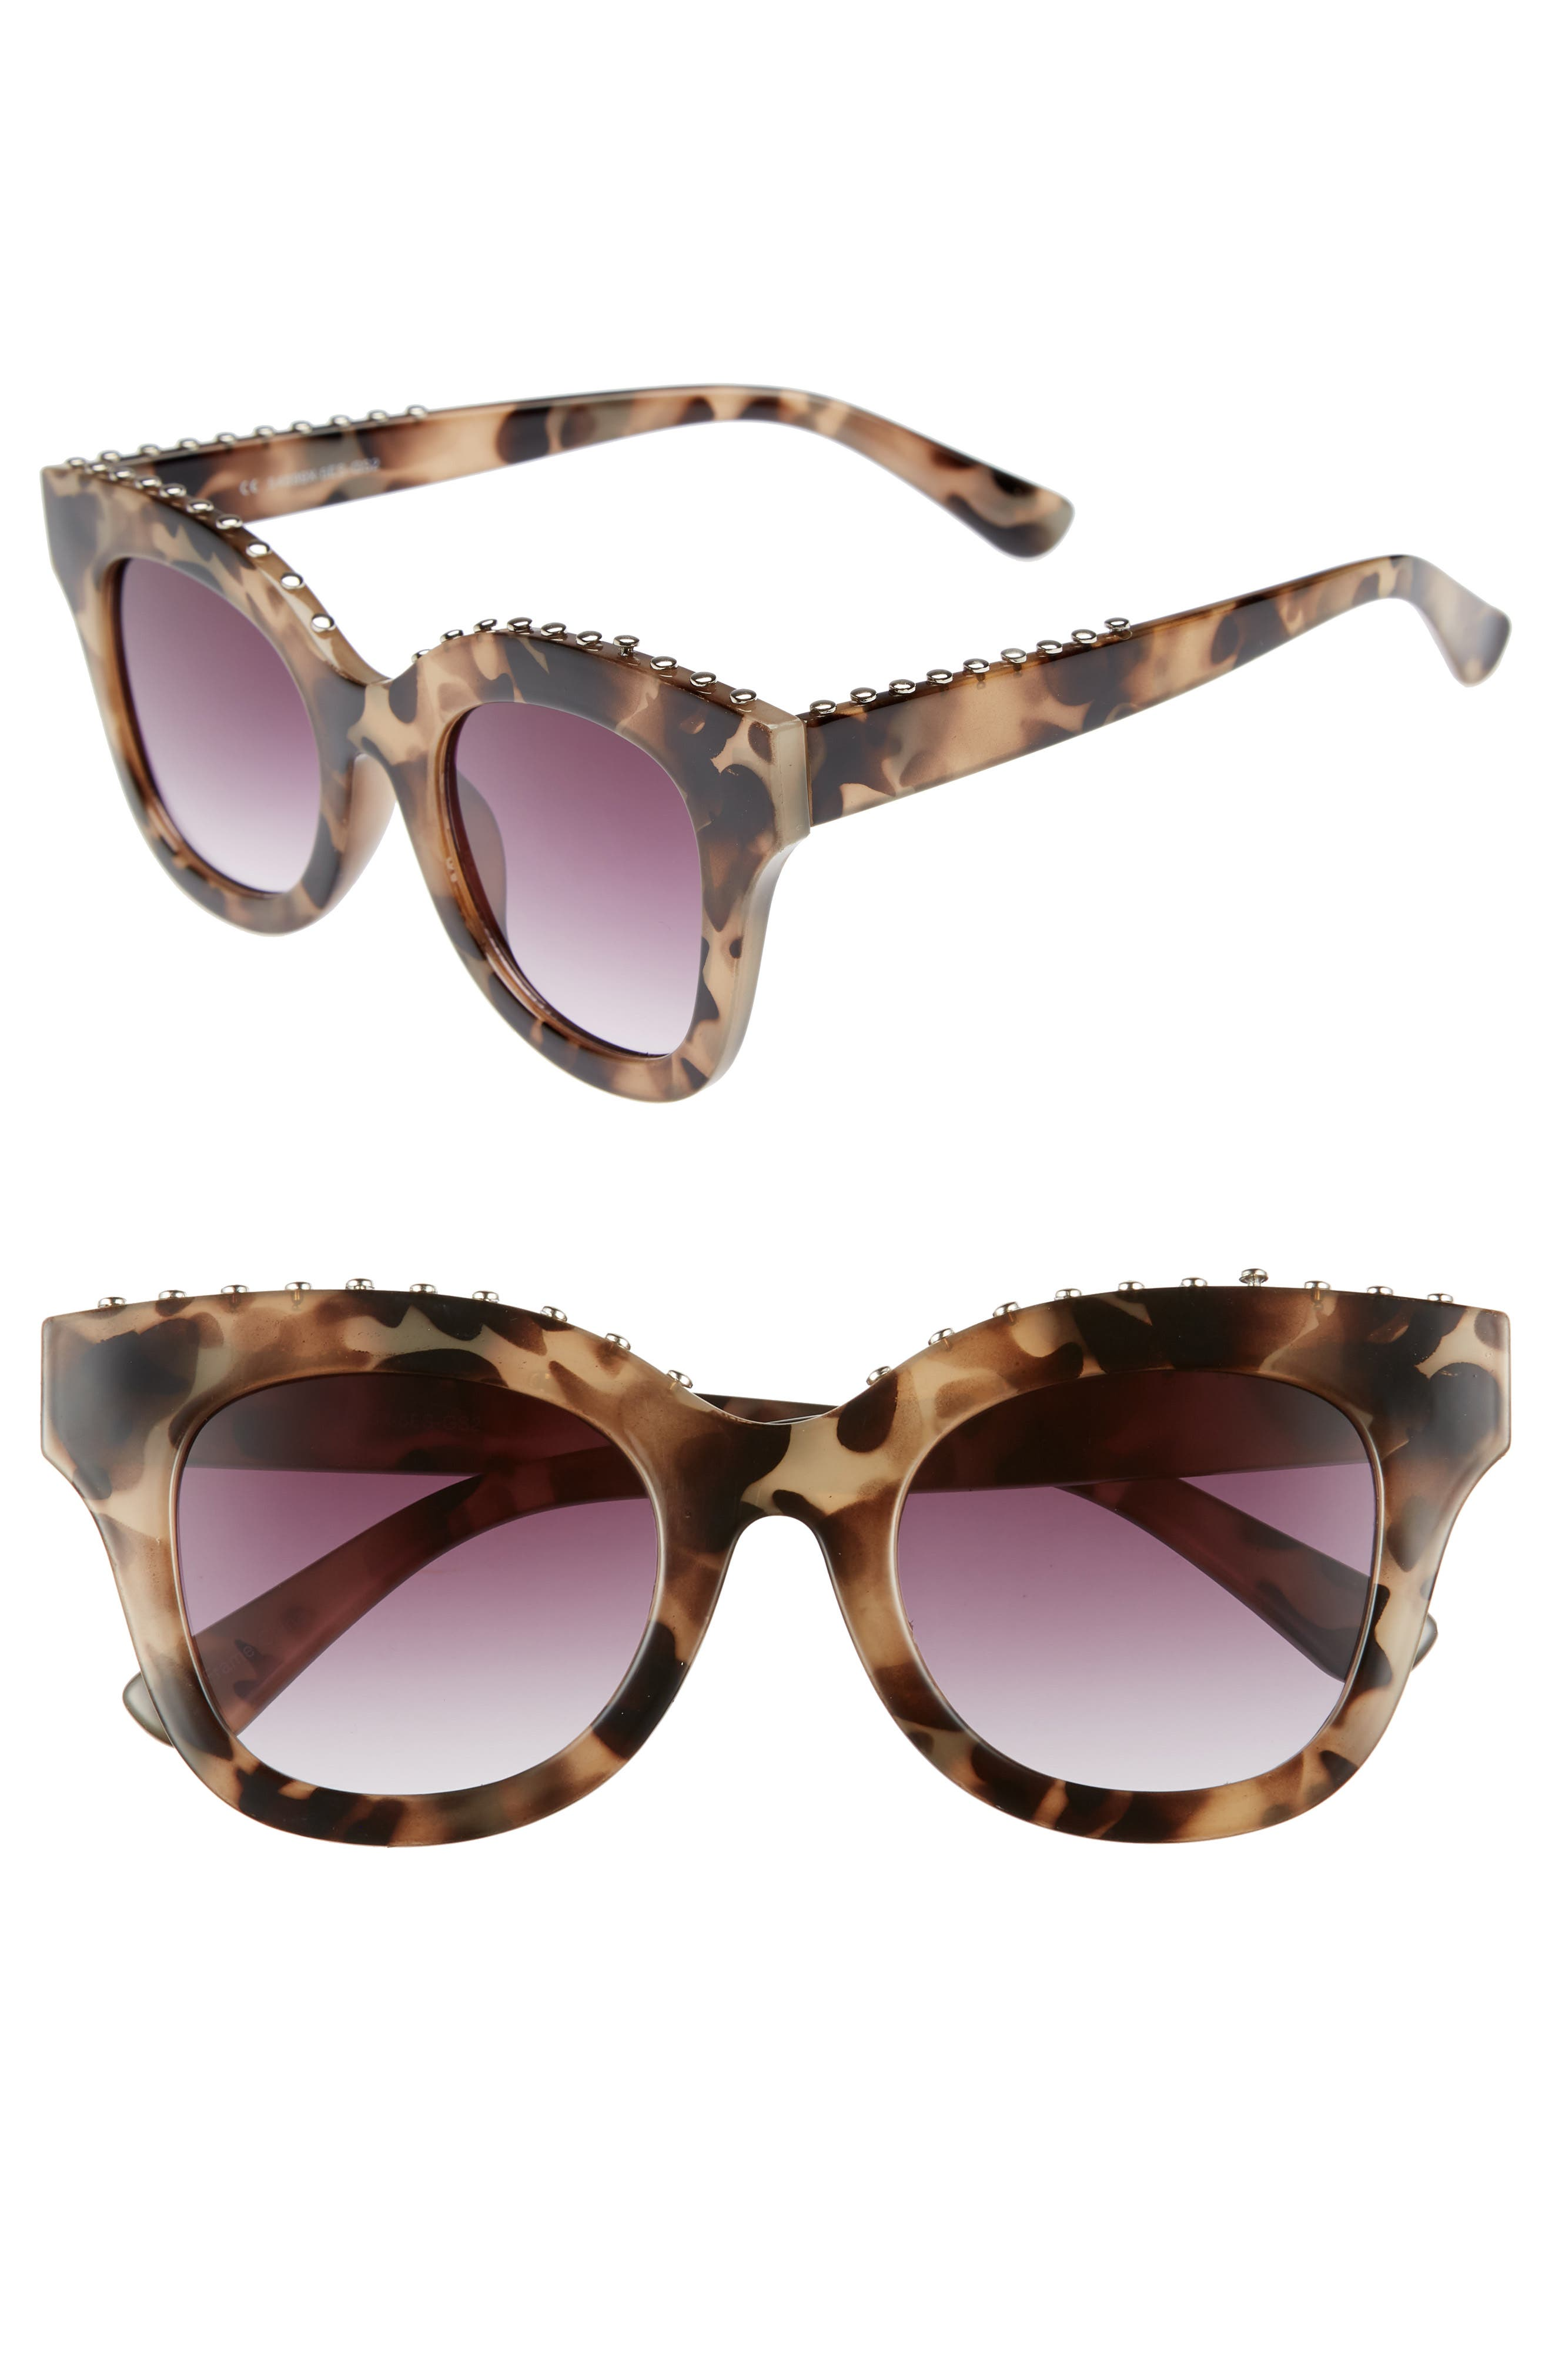 48mm Studded Sunglasses,                         Main,                         color, 200